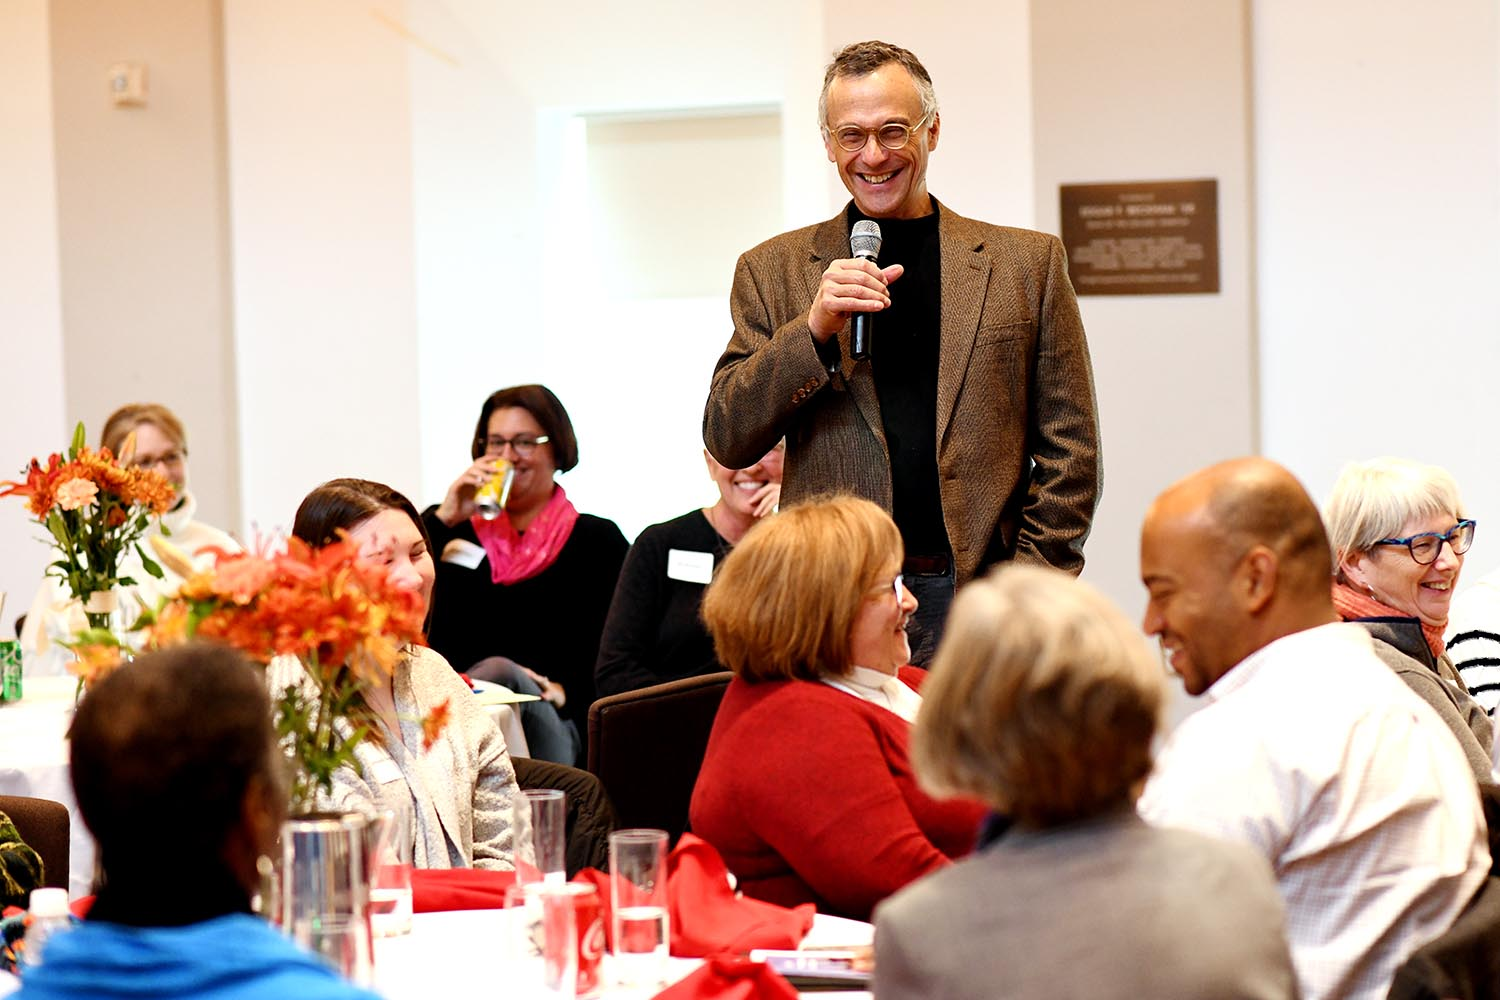 Wesleyan President Michael Roth '78 asked the employees to share memories of their first day at Wesleyan.